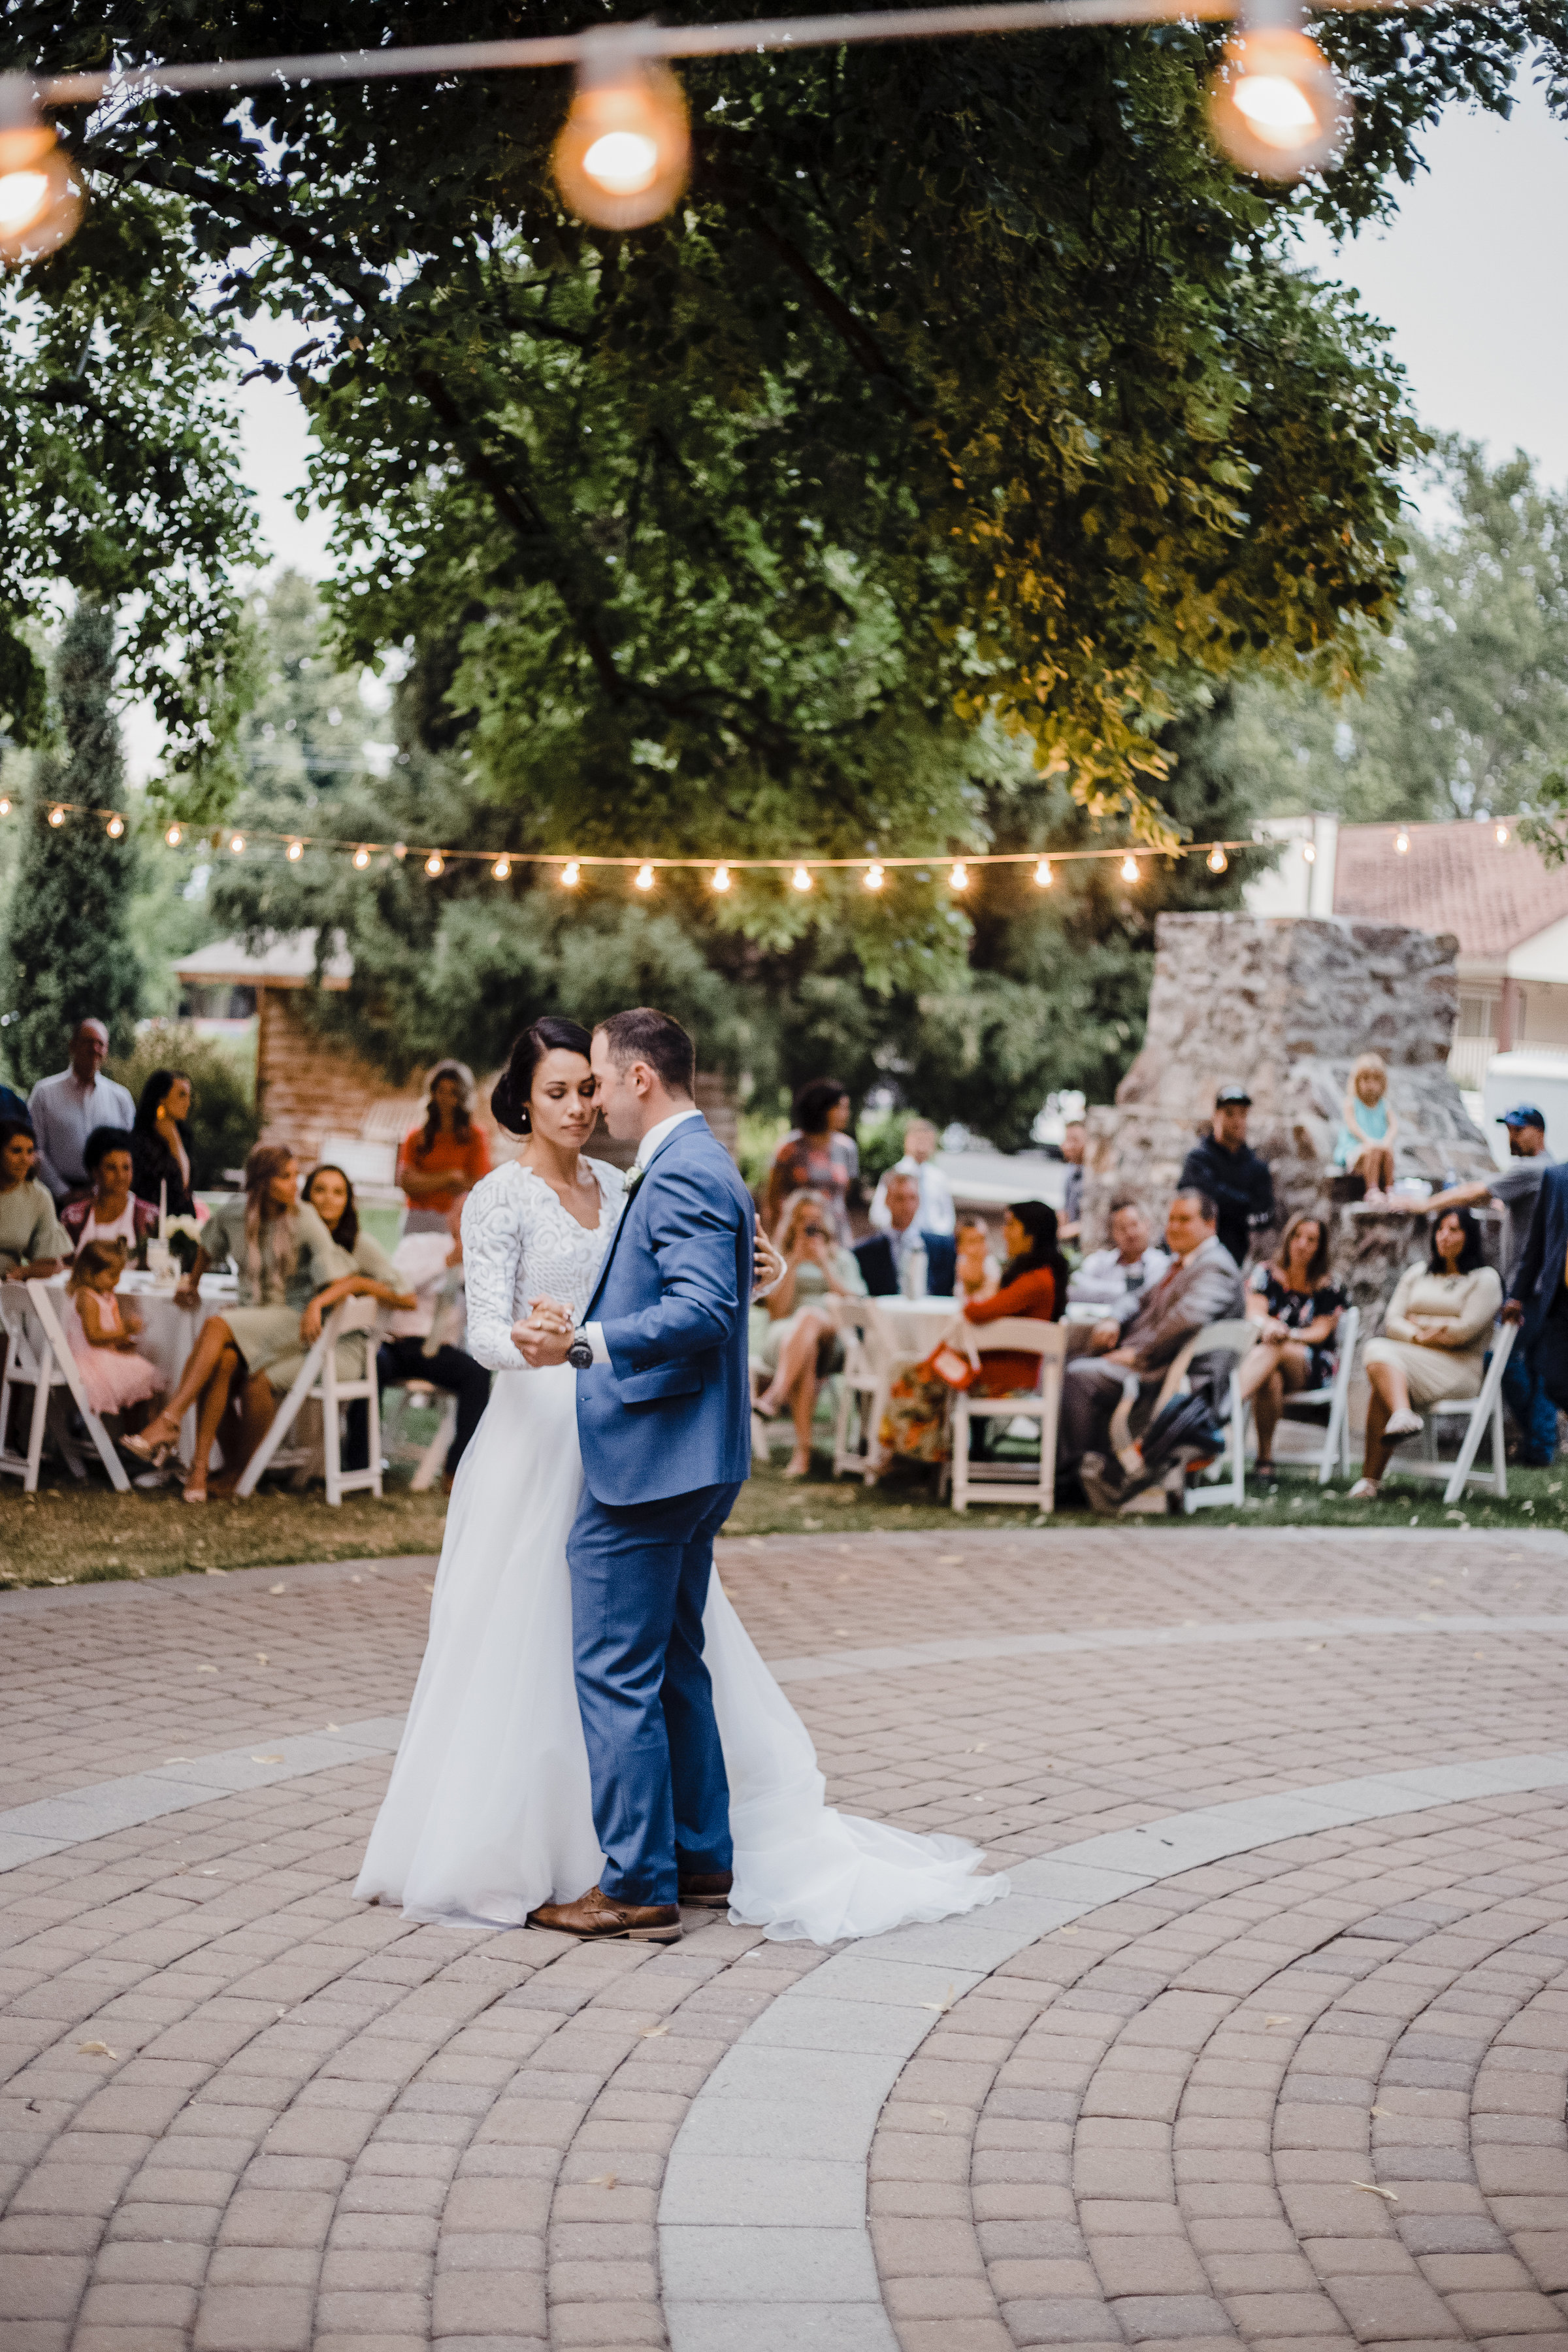 first dance newlywed couple on the dance floor wedding reception bride and groom dance